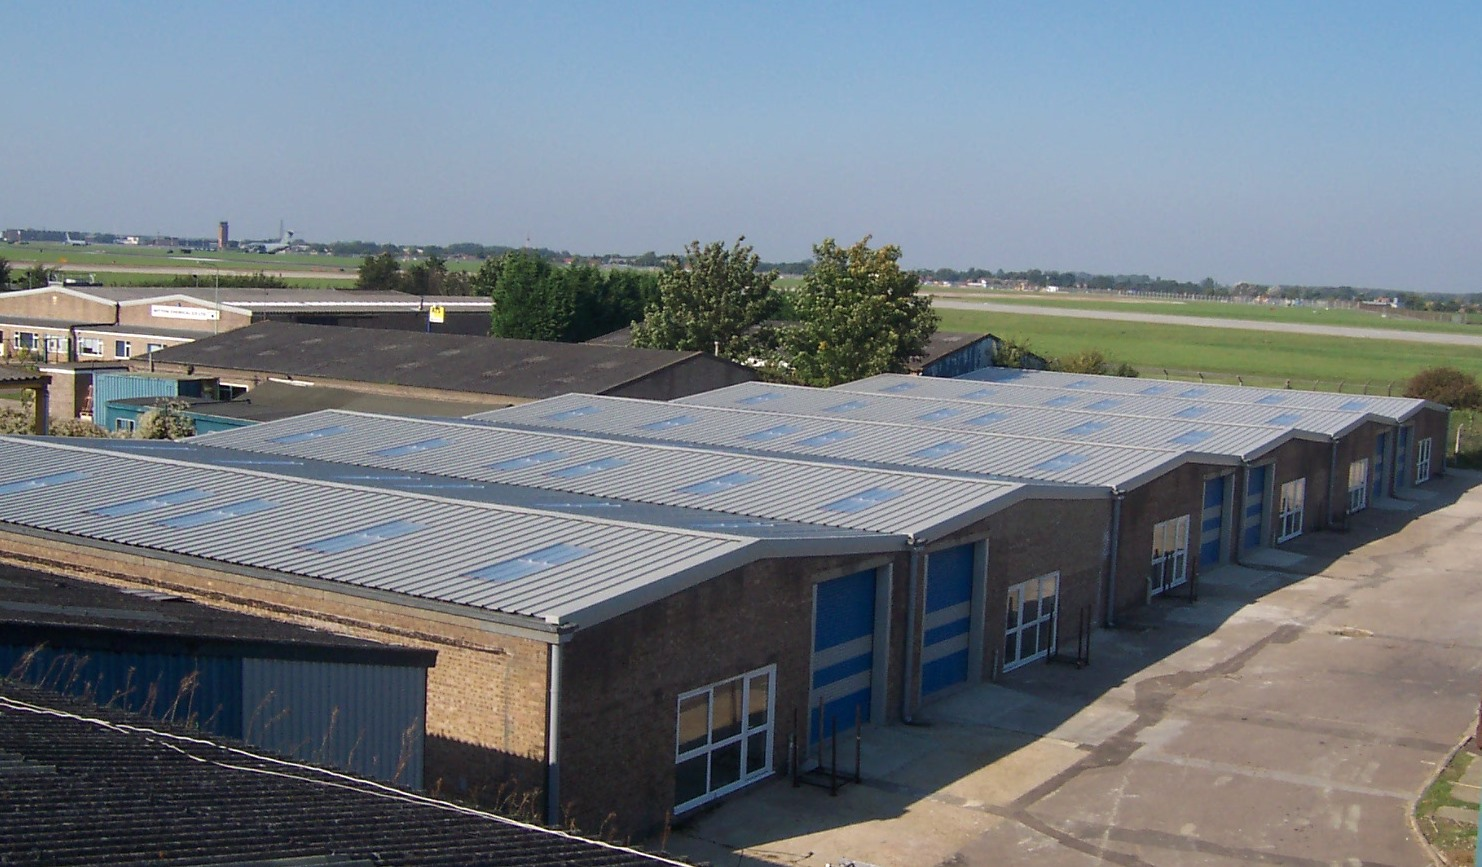 6No. Units, Mildenhall, Suffolk